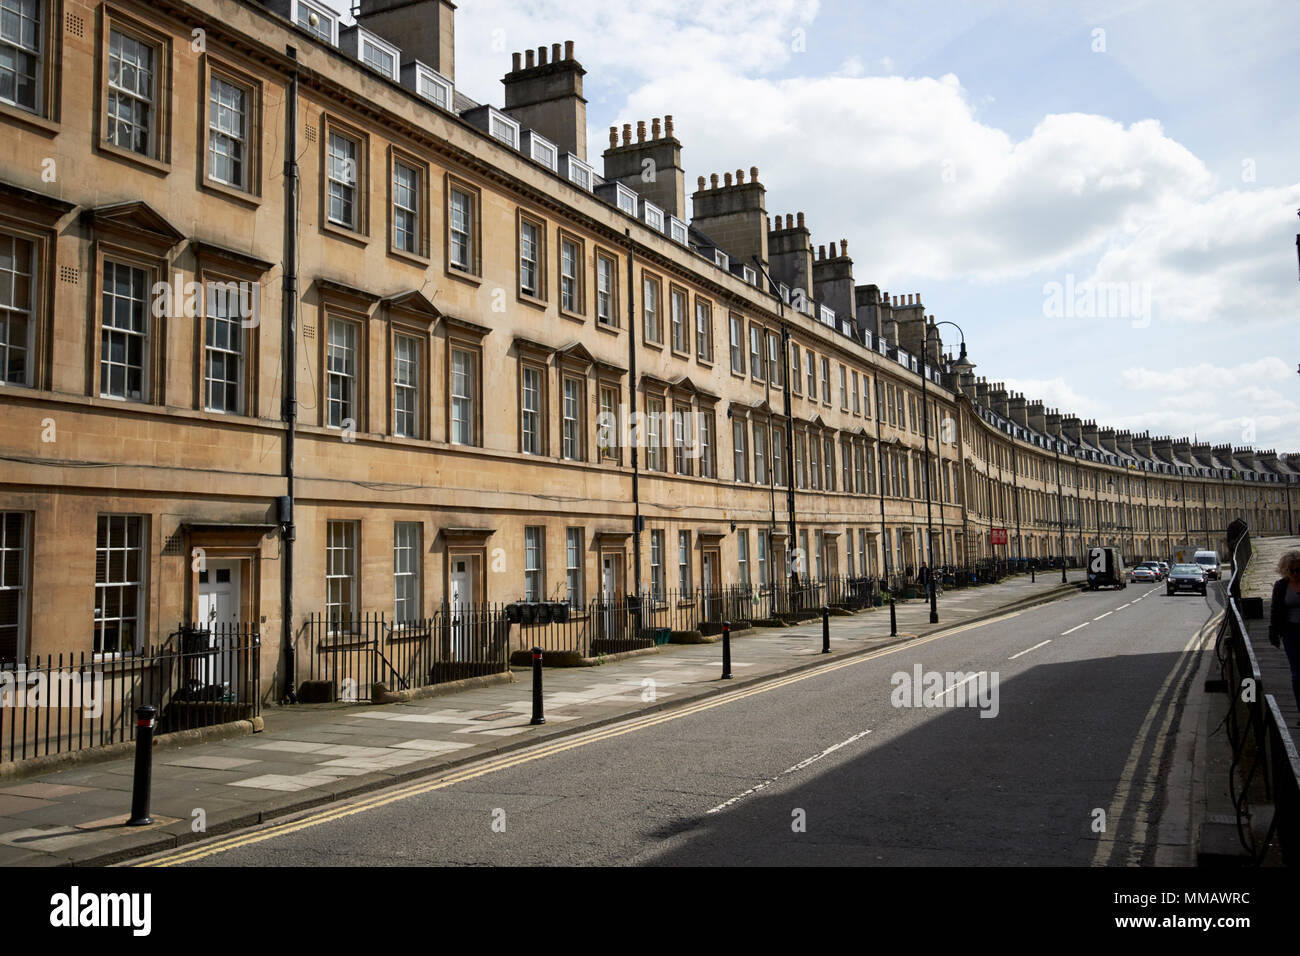 The paragon street of georgian townhouses on the A4 old roman road Bath England UK - Stock Image